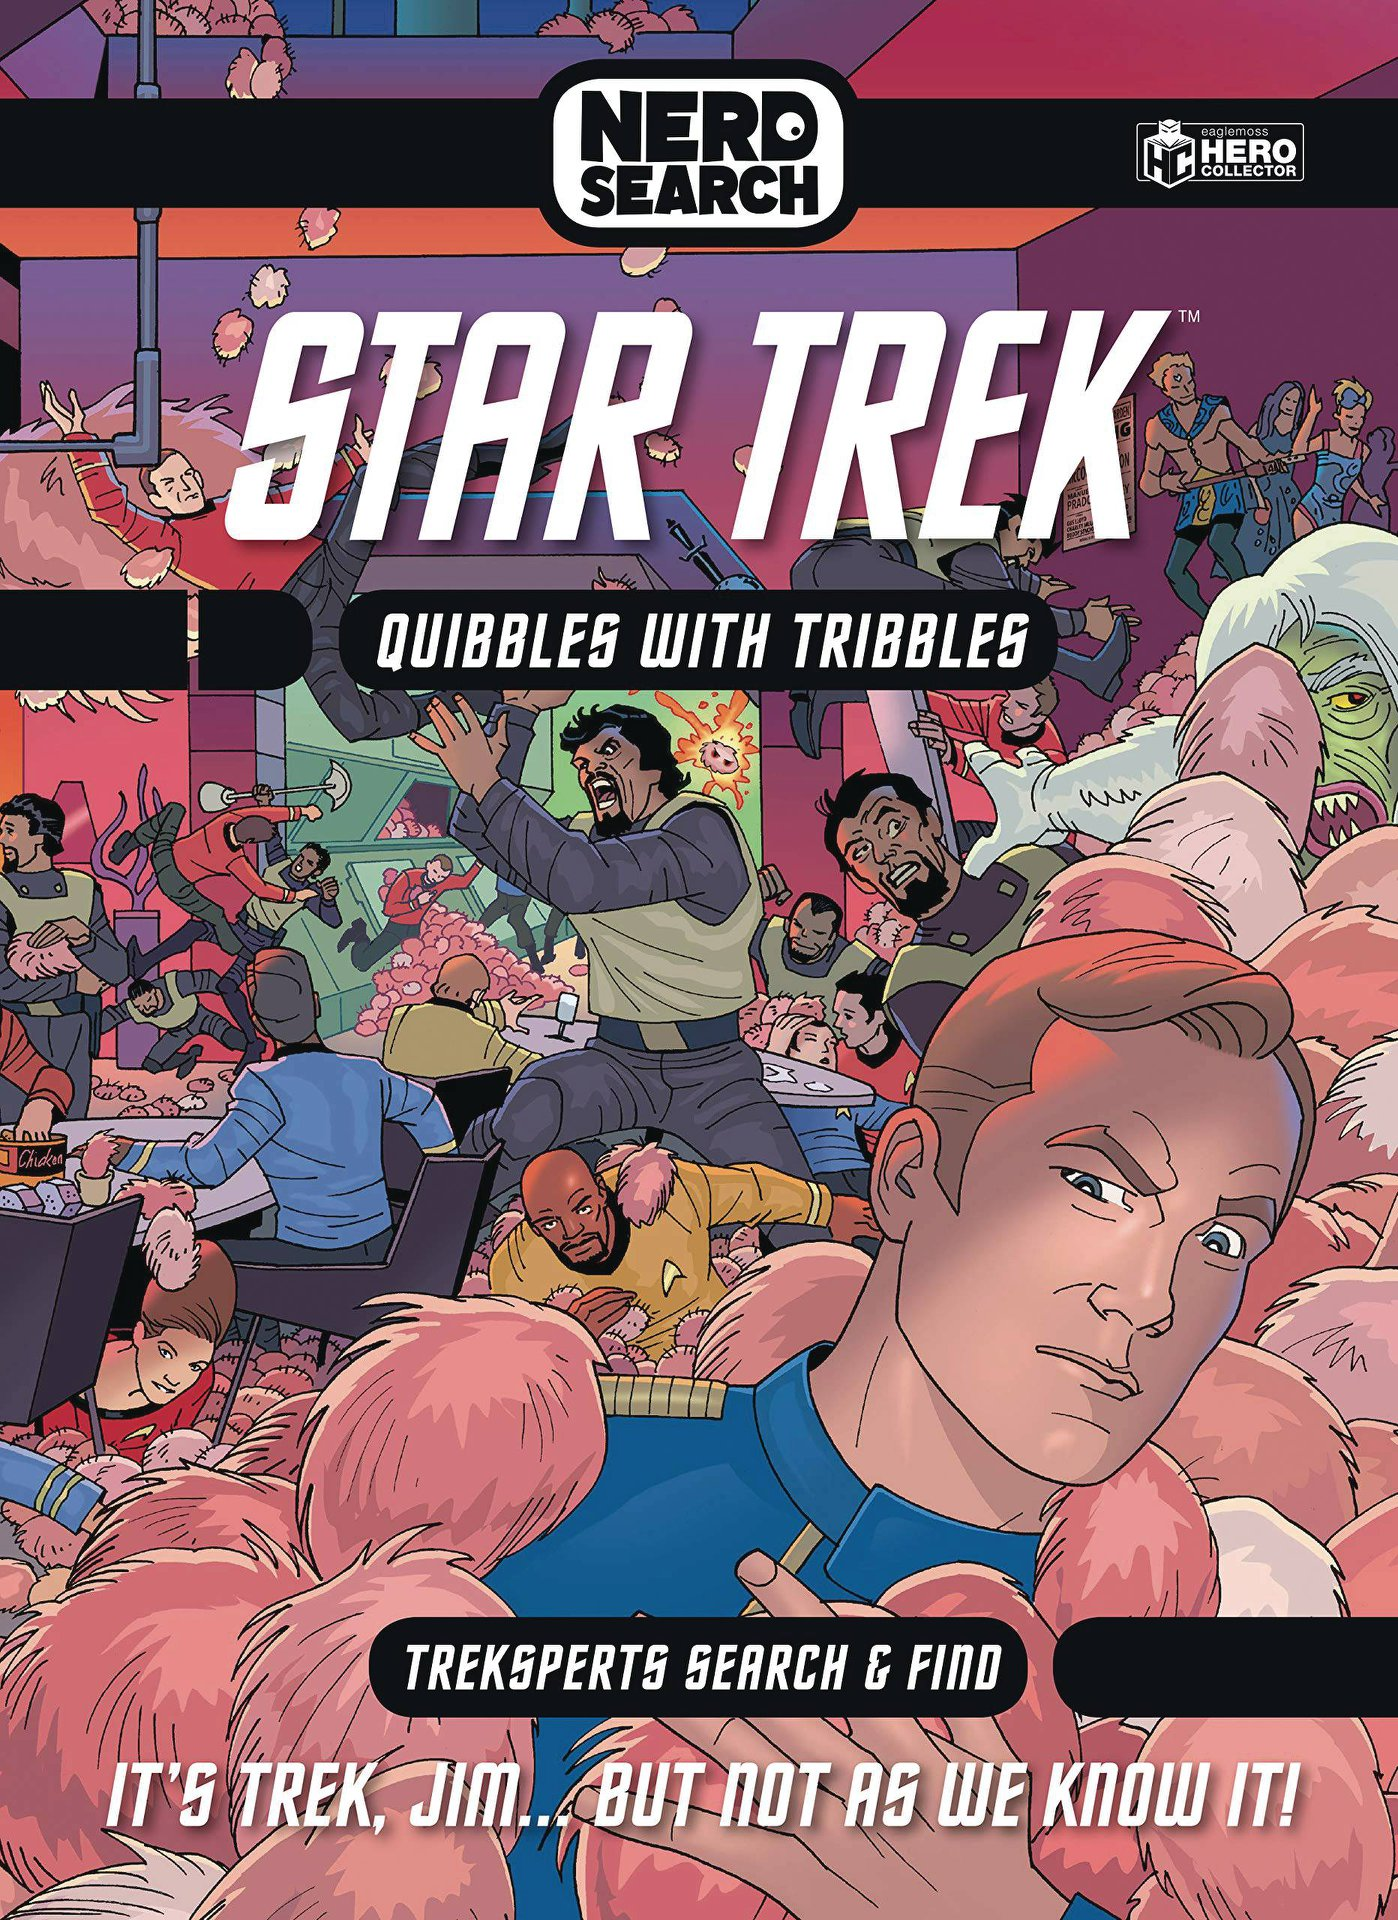 STAR TREK NERD SEARCH HC: QUIBBLES WITH TRIBBLES